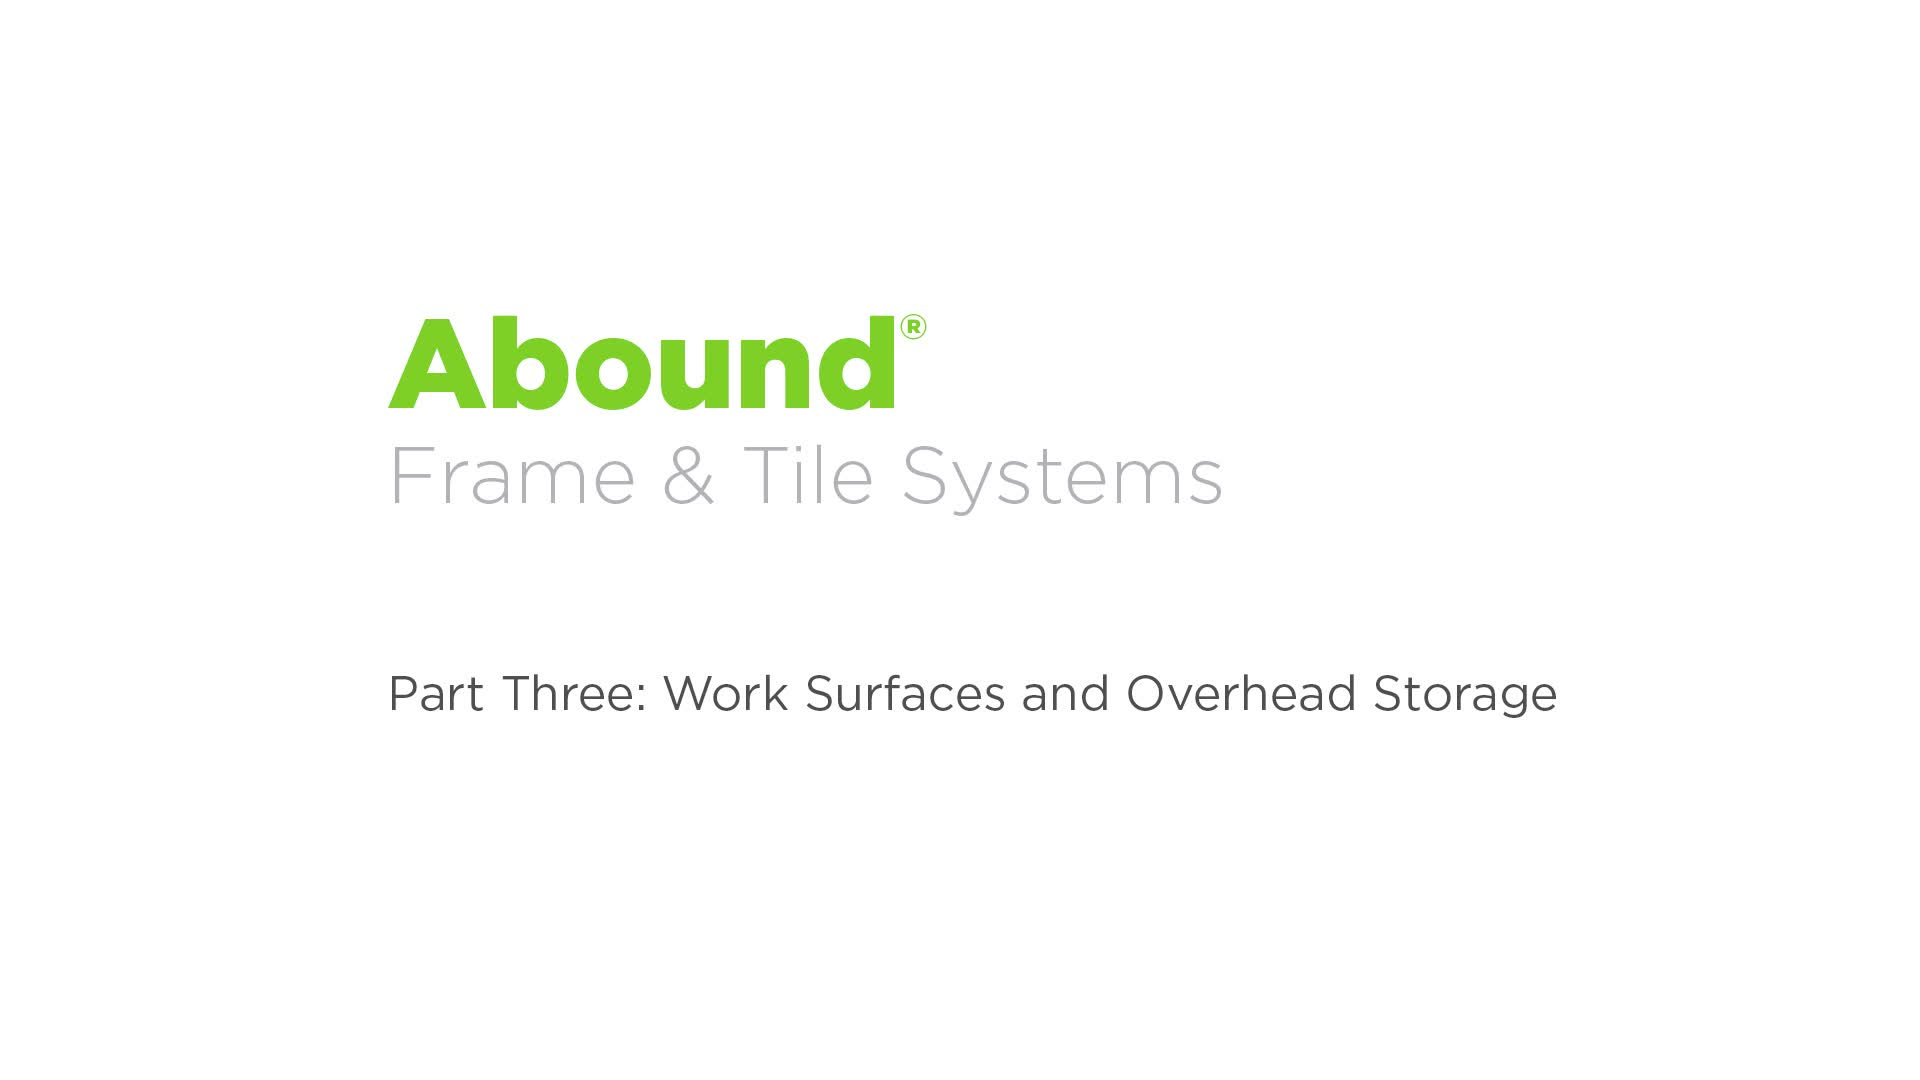 Abound Installation - Part 3: Worksurfaces and Overhead Storage video link